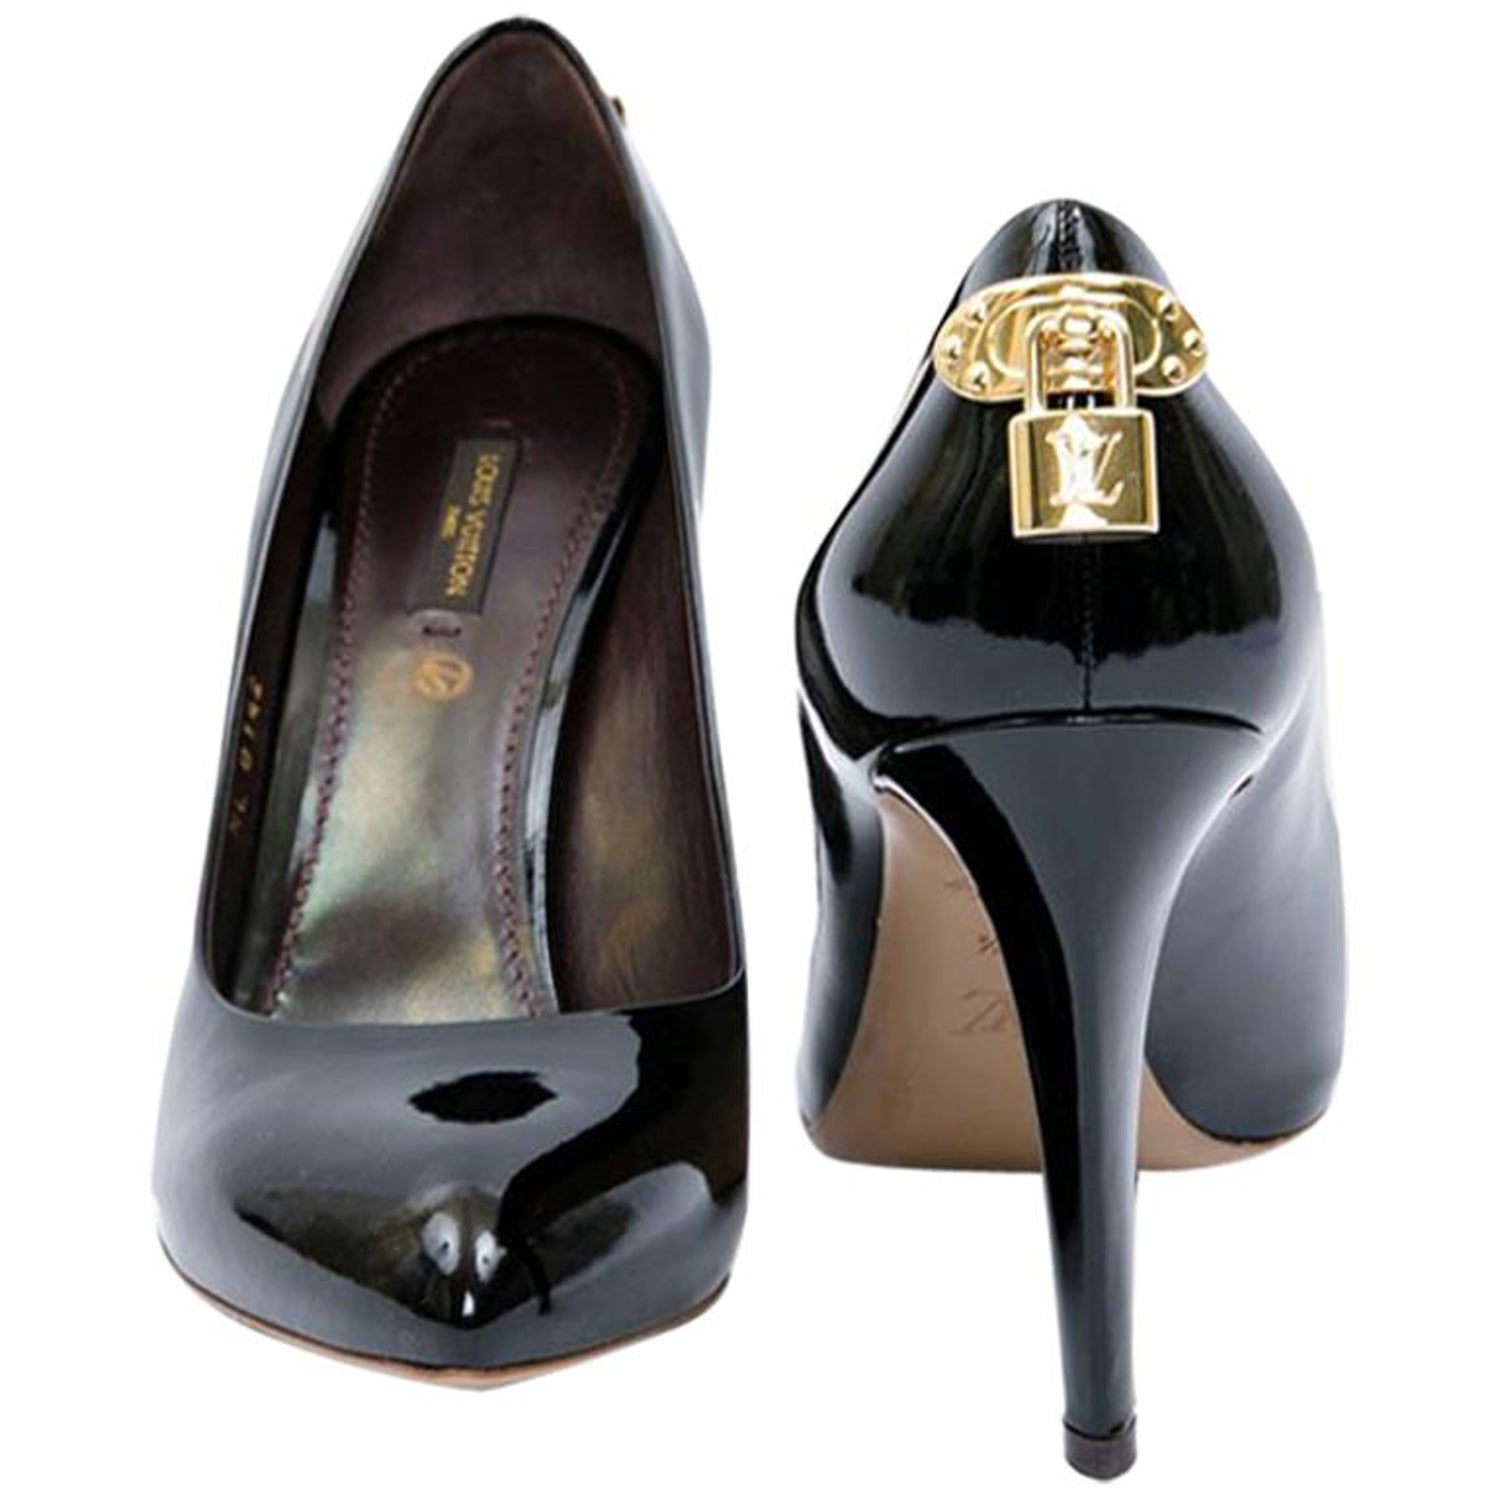 234787aa2c95 LOUIS VUITTON  Oh Really  High Heels in Black Patent Leather Size 39.5FR at  1stdibs